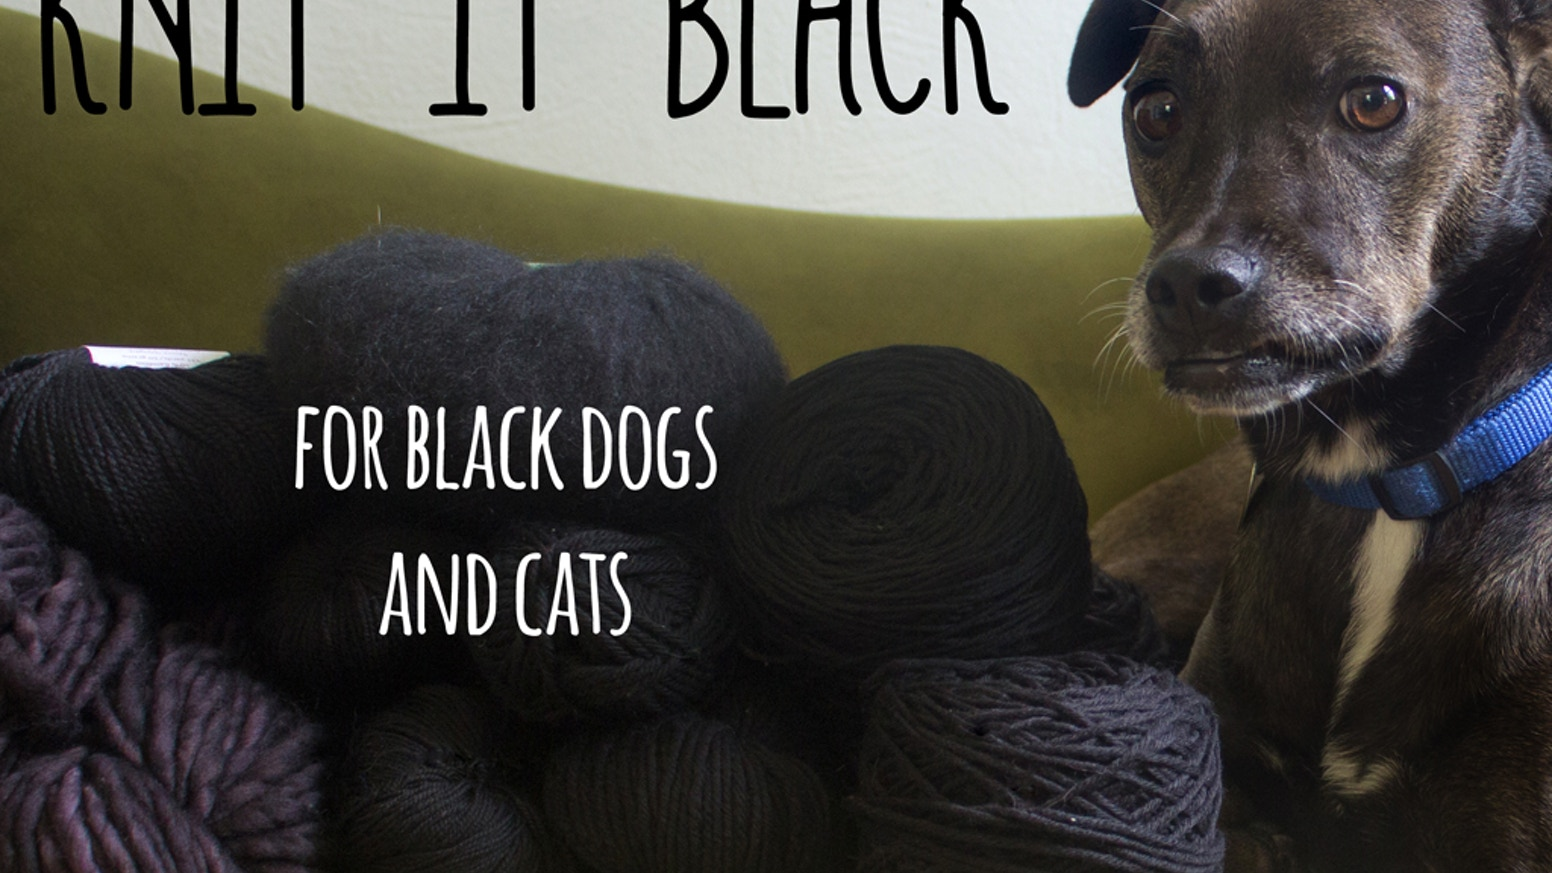 Knit It Black is a collection of black knitting patterns, created with the goal of raising awareness and funds for black rescue pets.